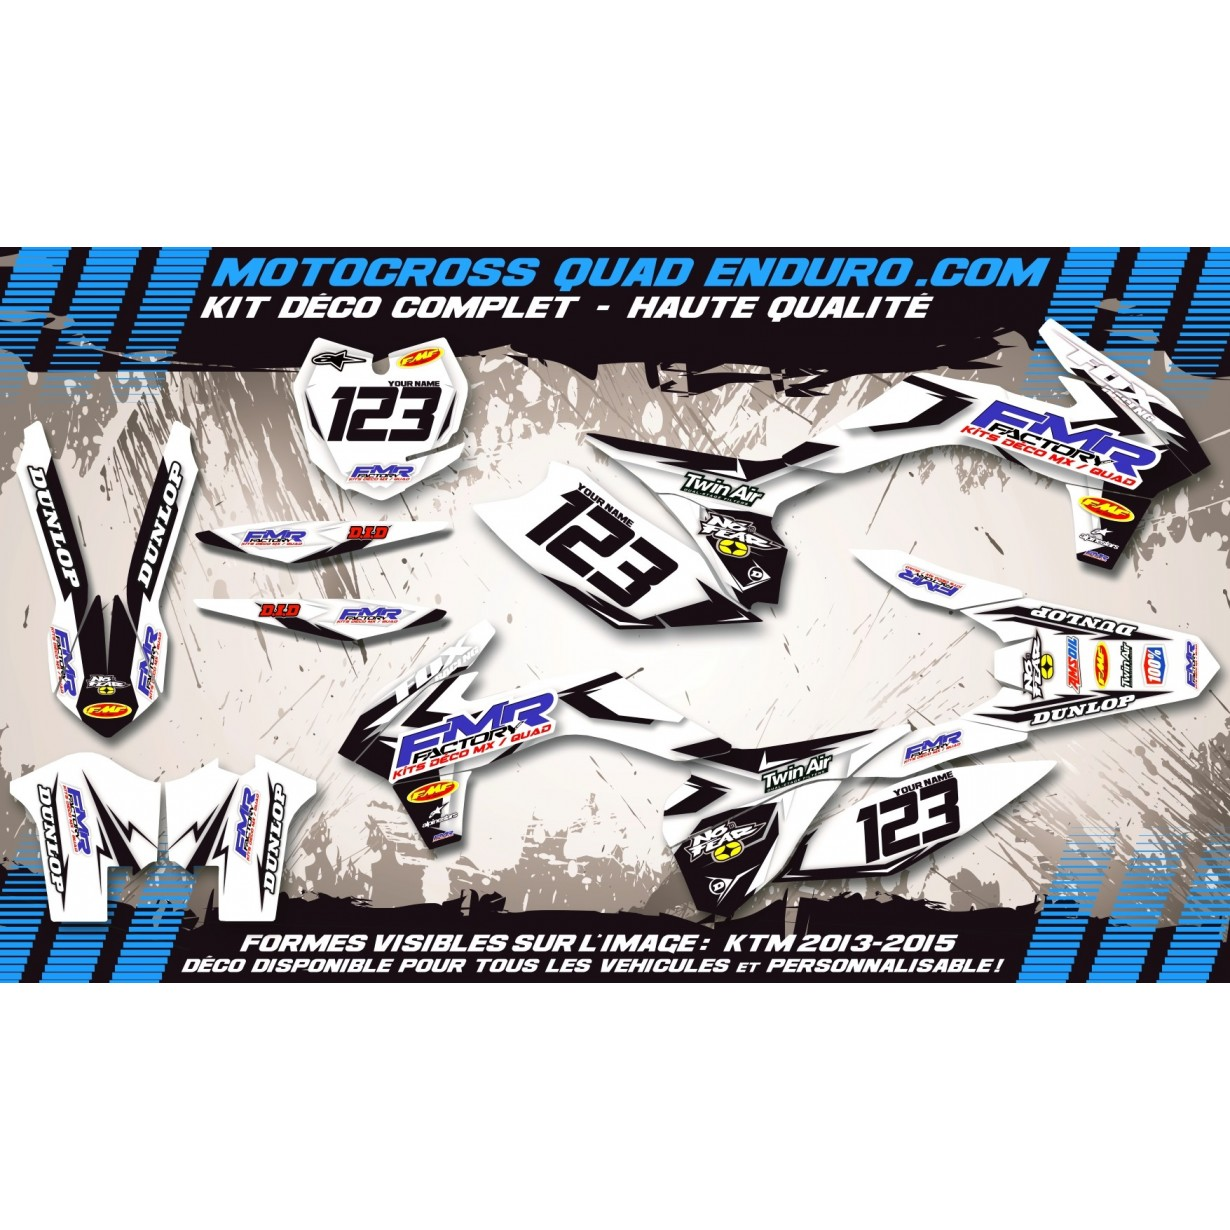 KIT DÉCO Perso 250 CRF 06-09 Fmr factory WT Edition MA13WT